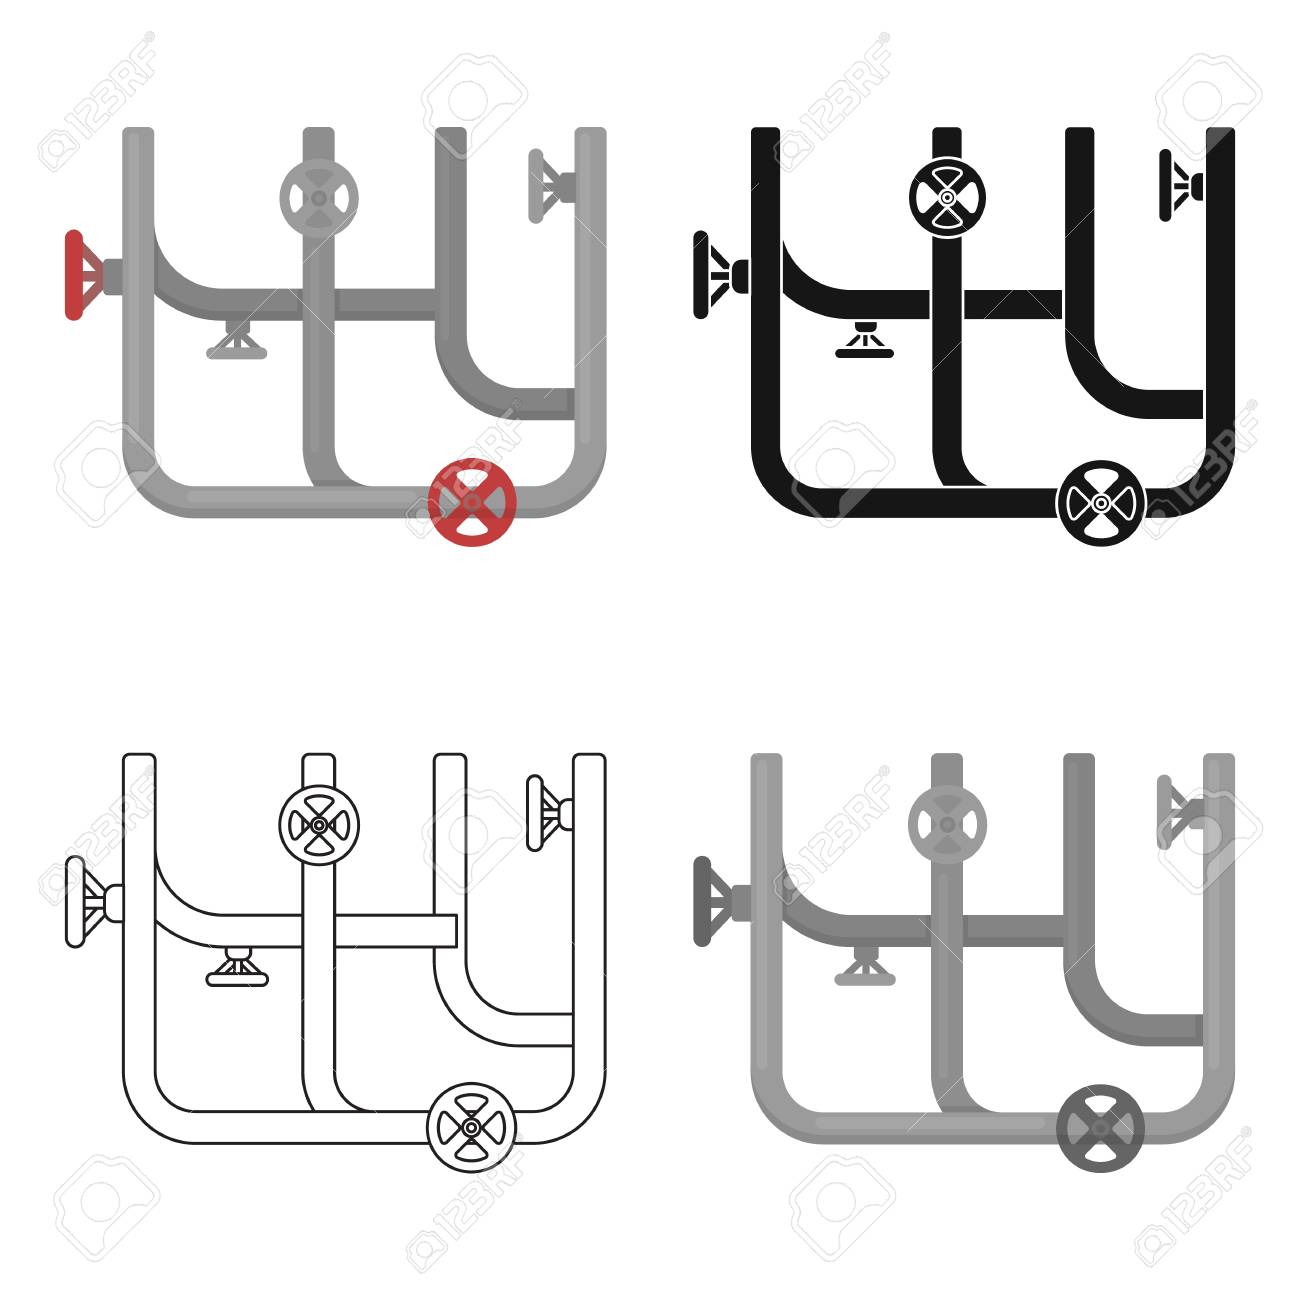 Pipes With Valves Icon In Cartoon Style Isolated On White Background Piping Diagram Symbols Plumbing Symbol Stock Vector